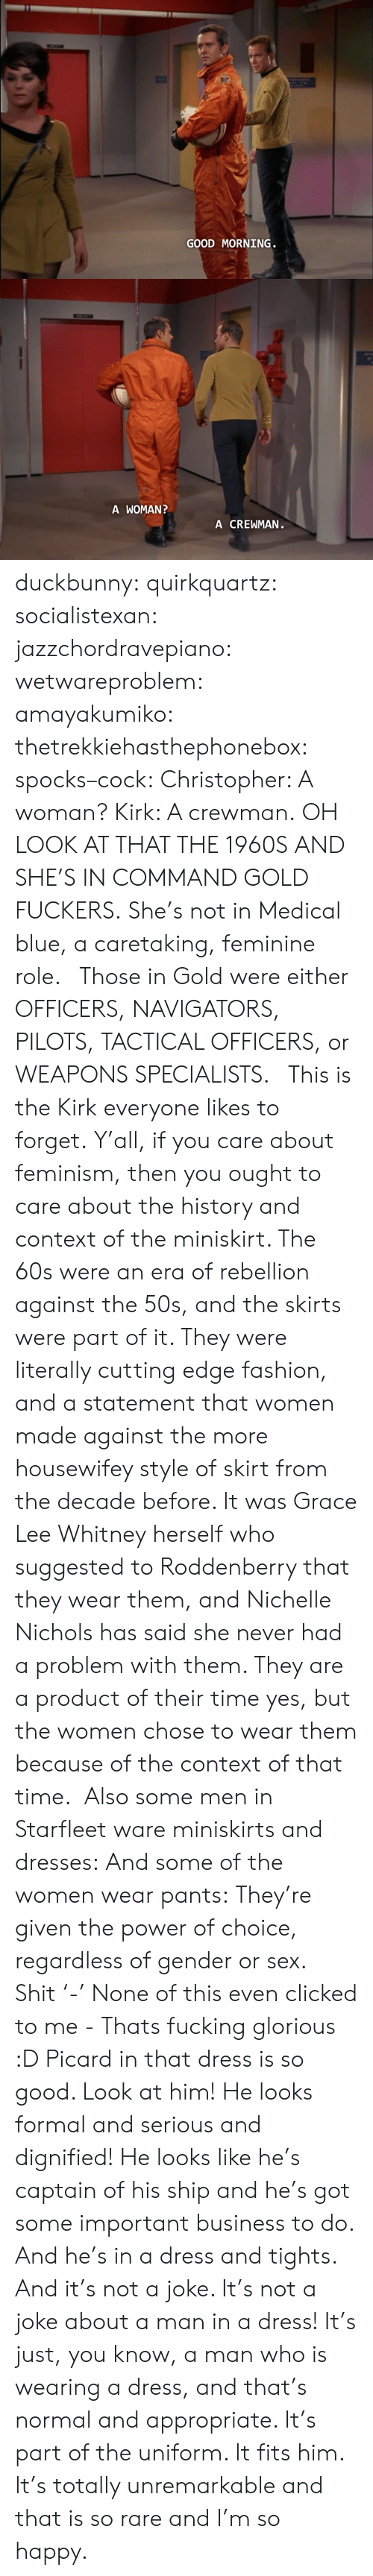 Oh Look: GOOD MORNING   A WOMAN  A CREWMAN duckbunny:  quirkquartz:   socialistexan:  jazzchordravepiano:  wetwareproblem:  amayakumiko:  thetrekkiehasthephonebox:  spocks–cock:  Christopher: A woman? Kirk: A crewman.  OH LOOK AT THAT THE 1960S  AND SHE'S IN COMMAND GOLD FUCKERS. She's not in Medical blue, a caretaking, feminine role.   Those in Gold were either OFFICERS, NAVIGATORS, PILOTS, TACTICAL OFFICERS, or WEAPONS SPECIALISTS.    This is the Kirk everyone likes to forget.  Y'all, if you care about feminism, then you ought to care about the history and context of the miniskirt. The 60s were an era of rebellion against the 50s, and the skirts were part of it. They were literally cutting edge fashion, and a statement that women made against the more housewifey style of skirt from the decade before. It was Grace Lee Whitney herself who suggested to Roddenberry that they wear them, and Nichelle Nichols has said she never had a problem with them. They are a product of their time yes, but the women chose to wear them because of the context of that time.   Also some men in Starfleet ware miniskirts and dresses: And some of the women wear pants: They're given the power of choice, regardless of gender or sex.   Shit '-' None of this even clicked to me - Thats fucking glorious :D   Picard in that dress is so good. Look at him! He looks formal and serious and dignified! He looks like he's captain of his ship and he's got some important business to do. And he's in a dress and tights. And it's not a joke. It's not a joke about a man in a dress! It's just, you know, a man who is wearing a dress, and that's normal and appropriate. It's part of the uniform. It fits him. It's totally unremarkable and that is so rare and I'm so happy.